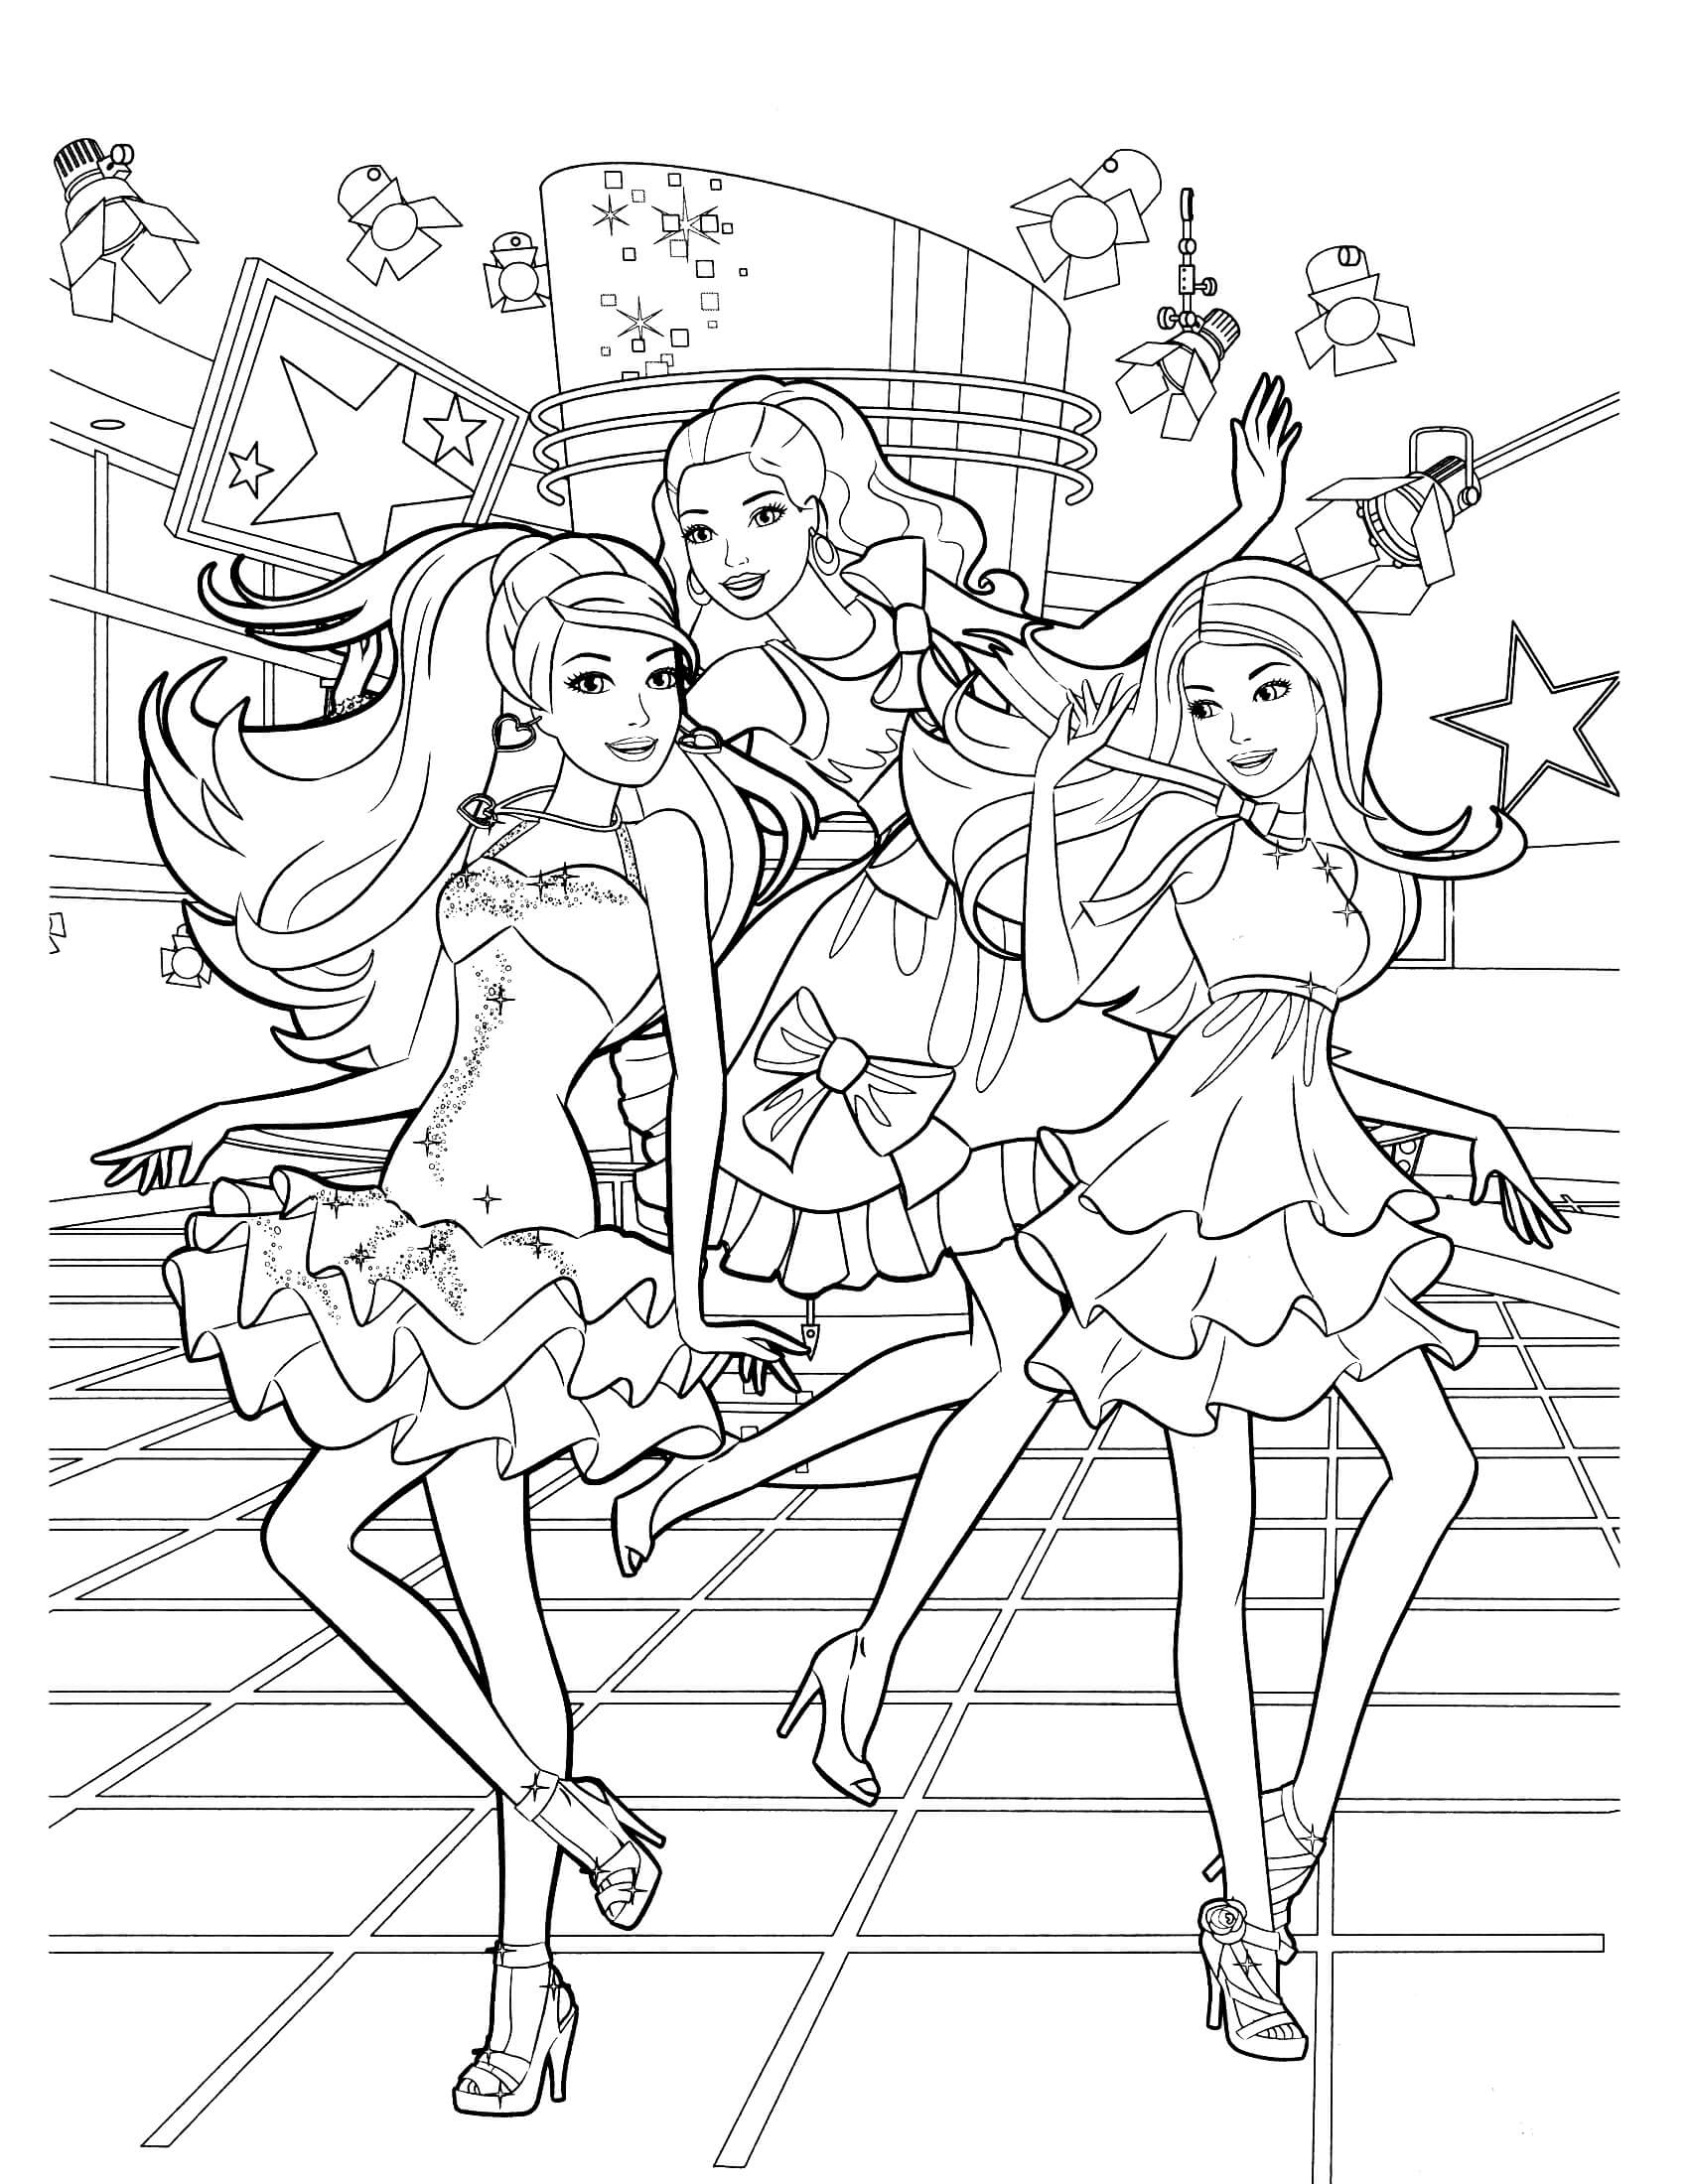 barbie painting pages modern barbie coloring page with original logo barbie painting pages